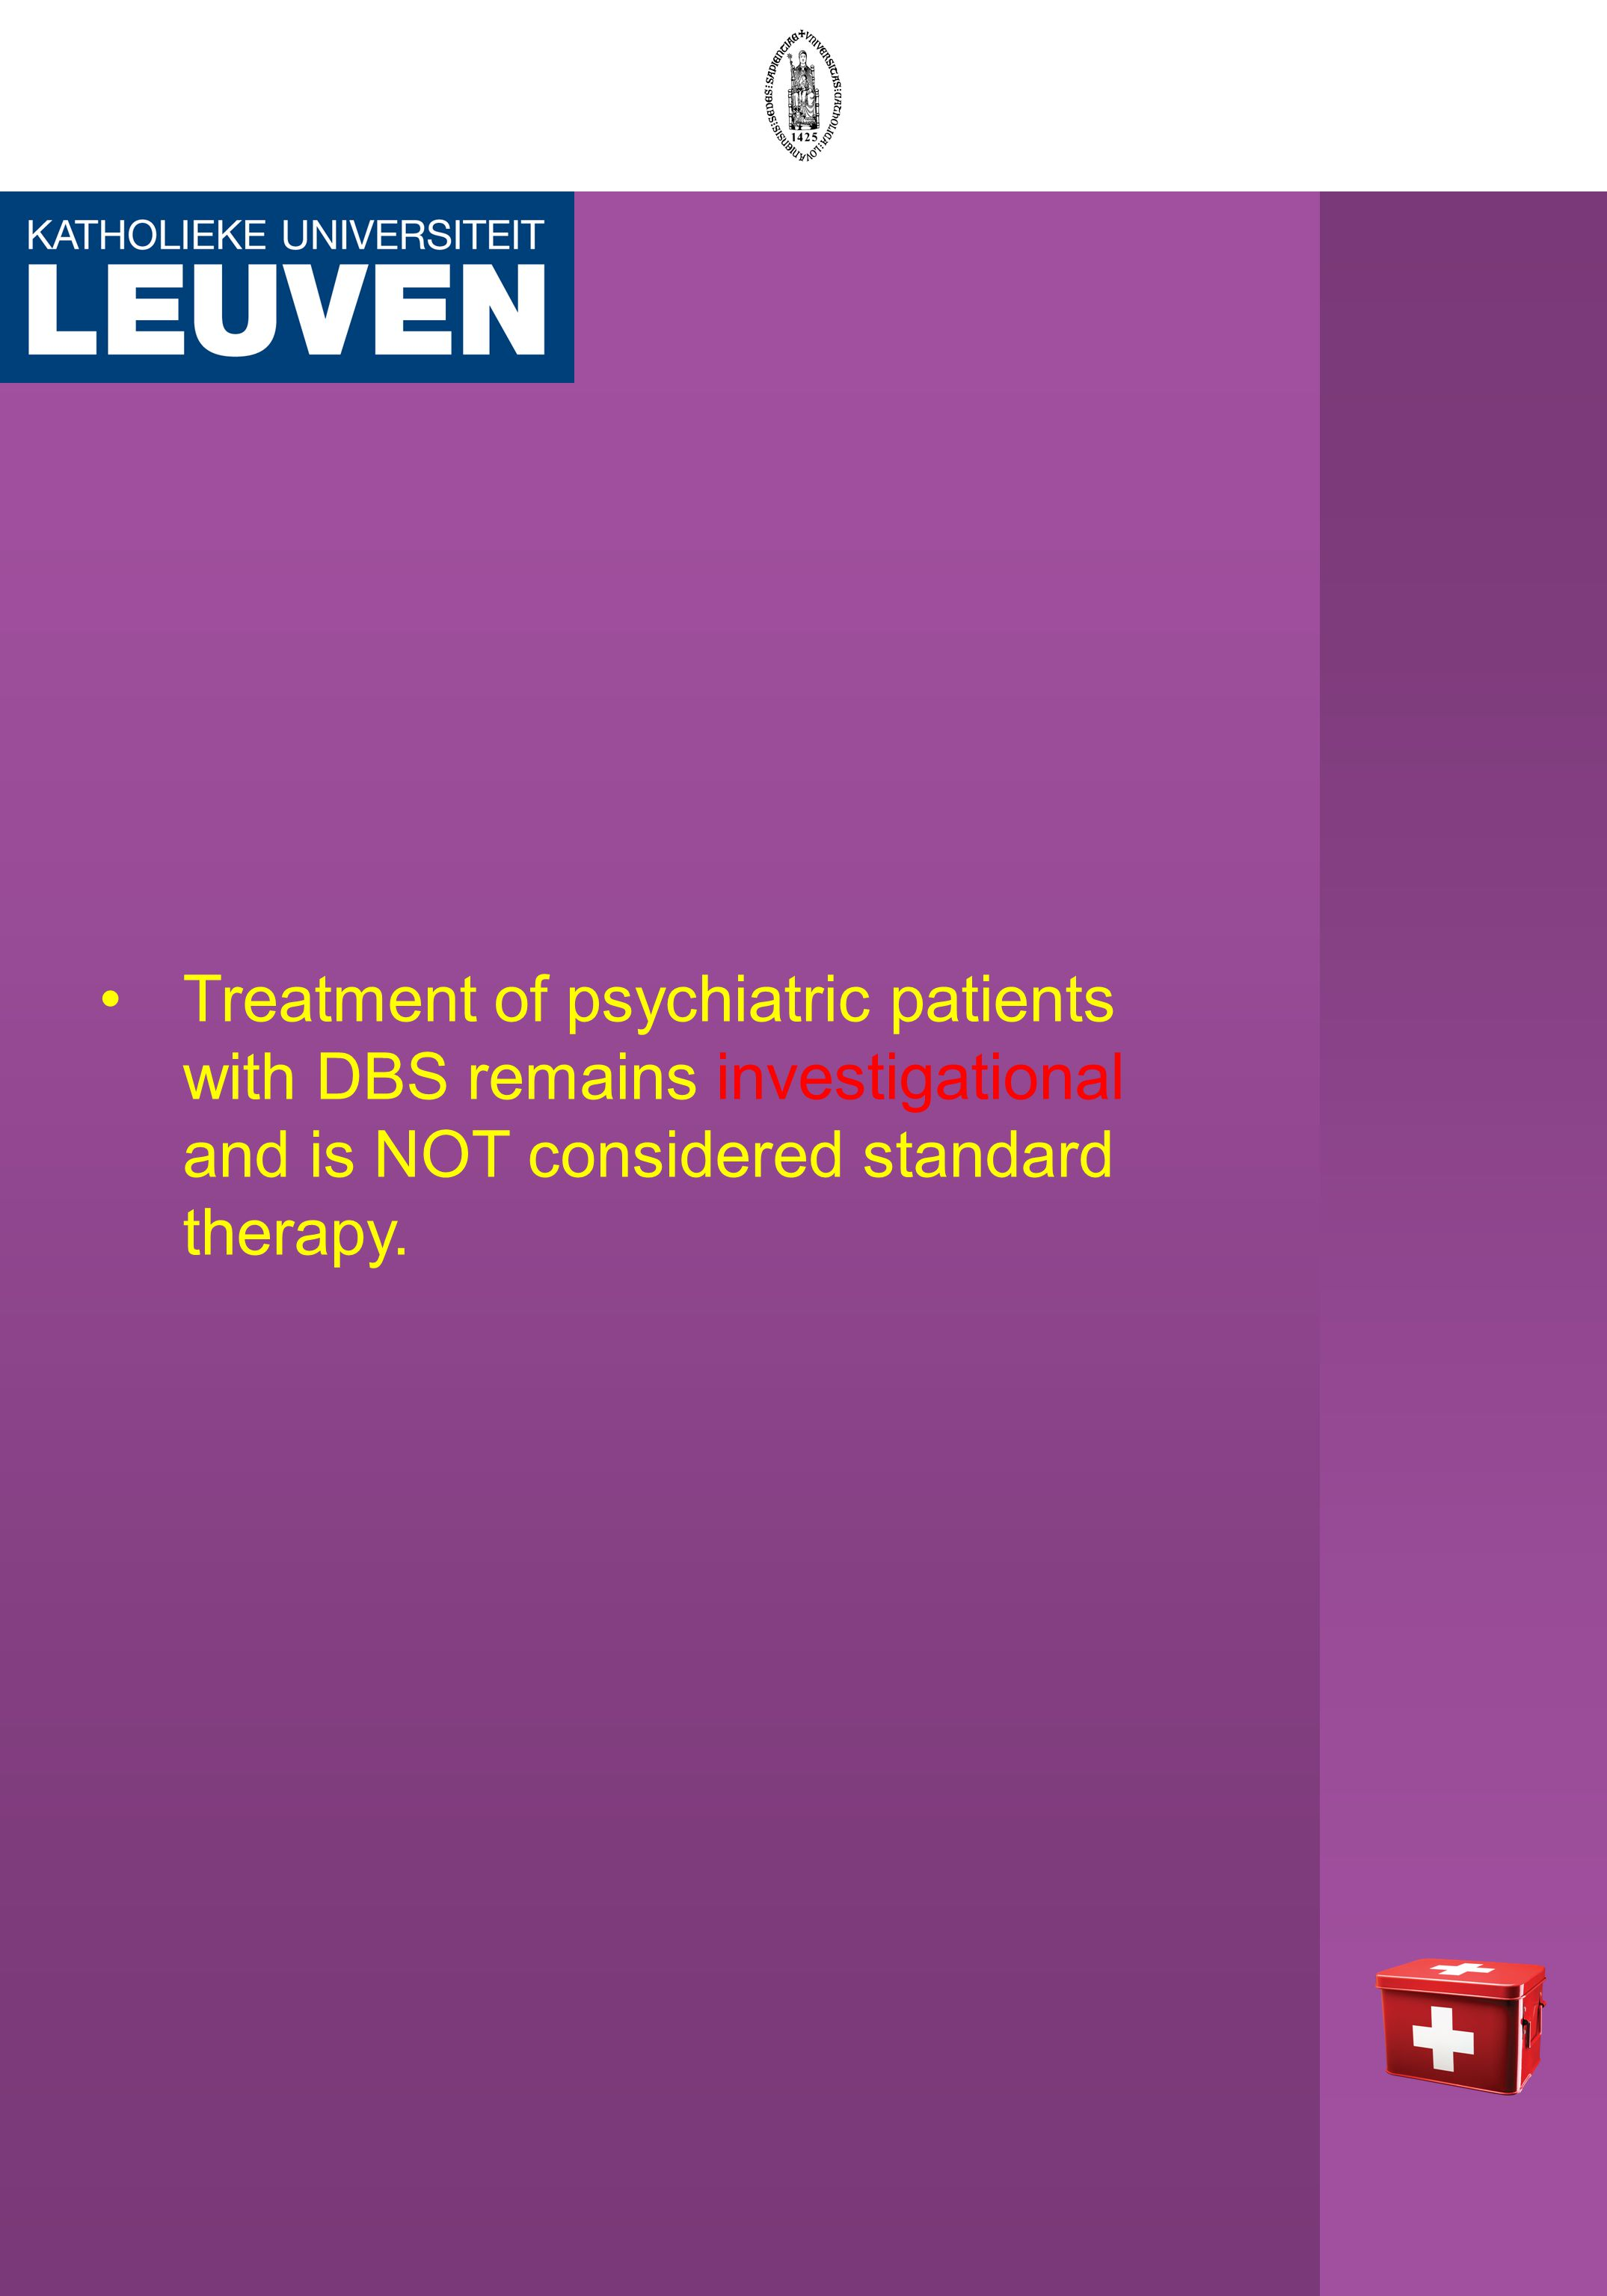 Treatment of psychiatric patients with DBS remains investigational and is NOT considered standard therapy.